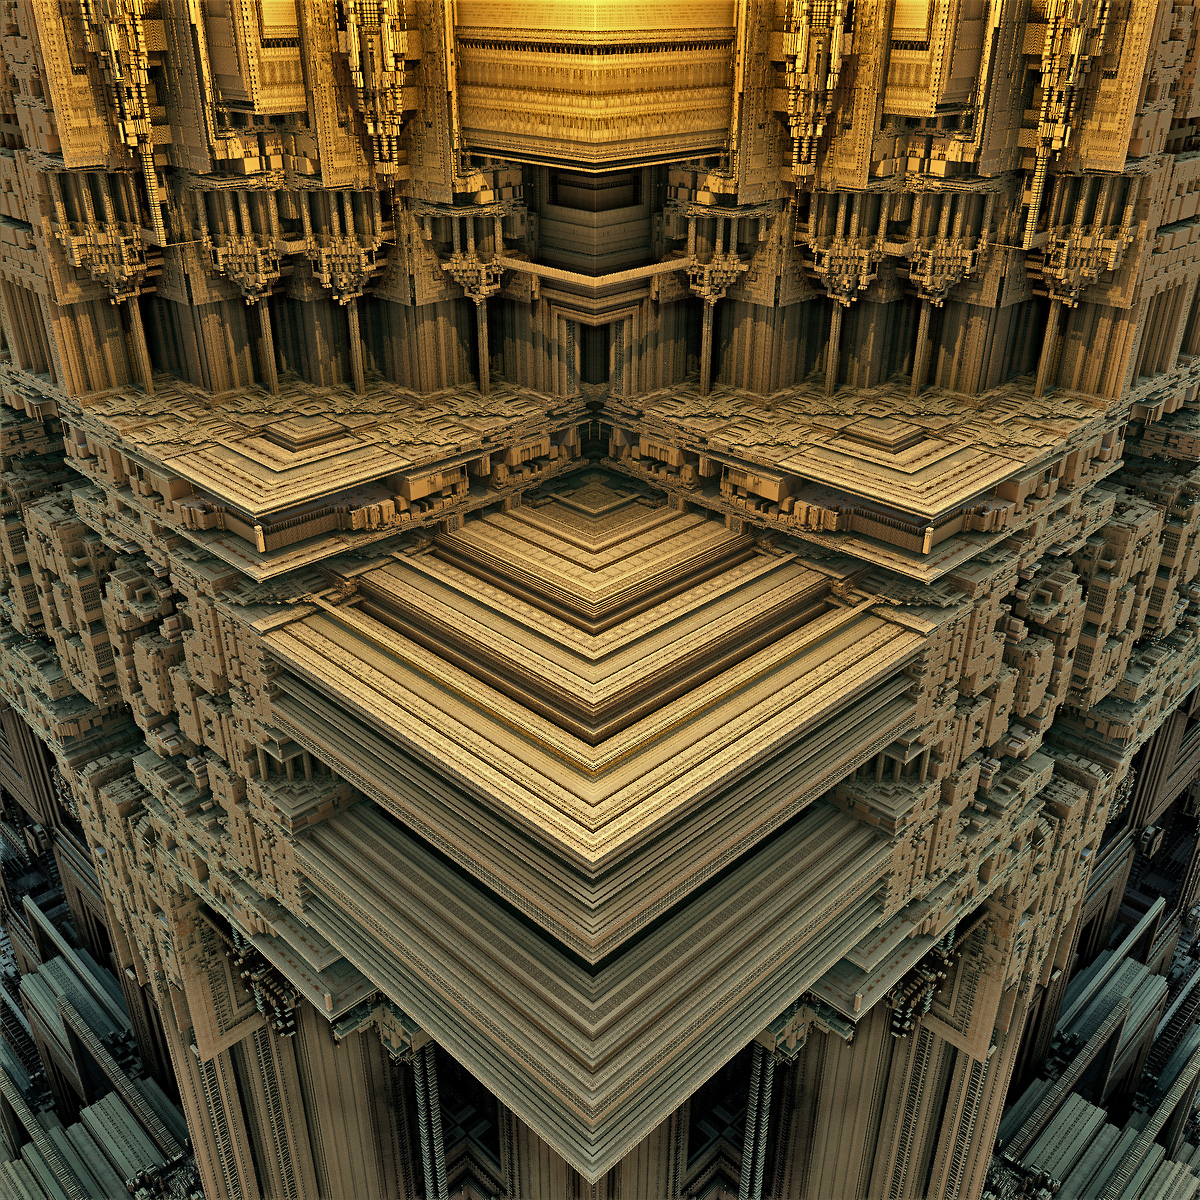 Temple of Eight Pillars by Vidom